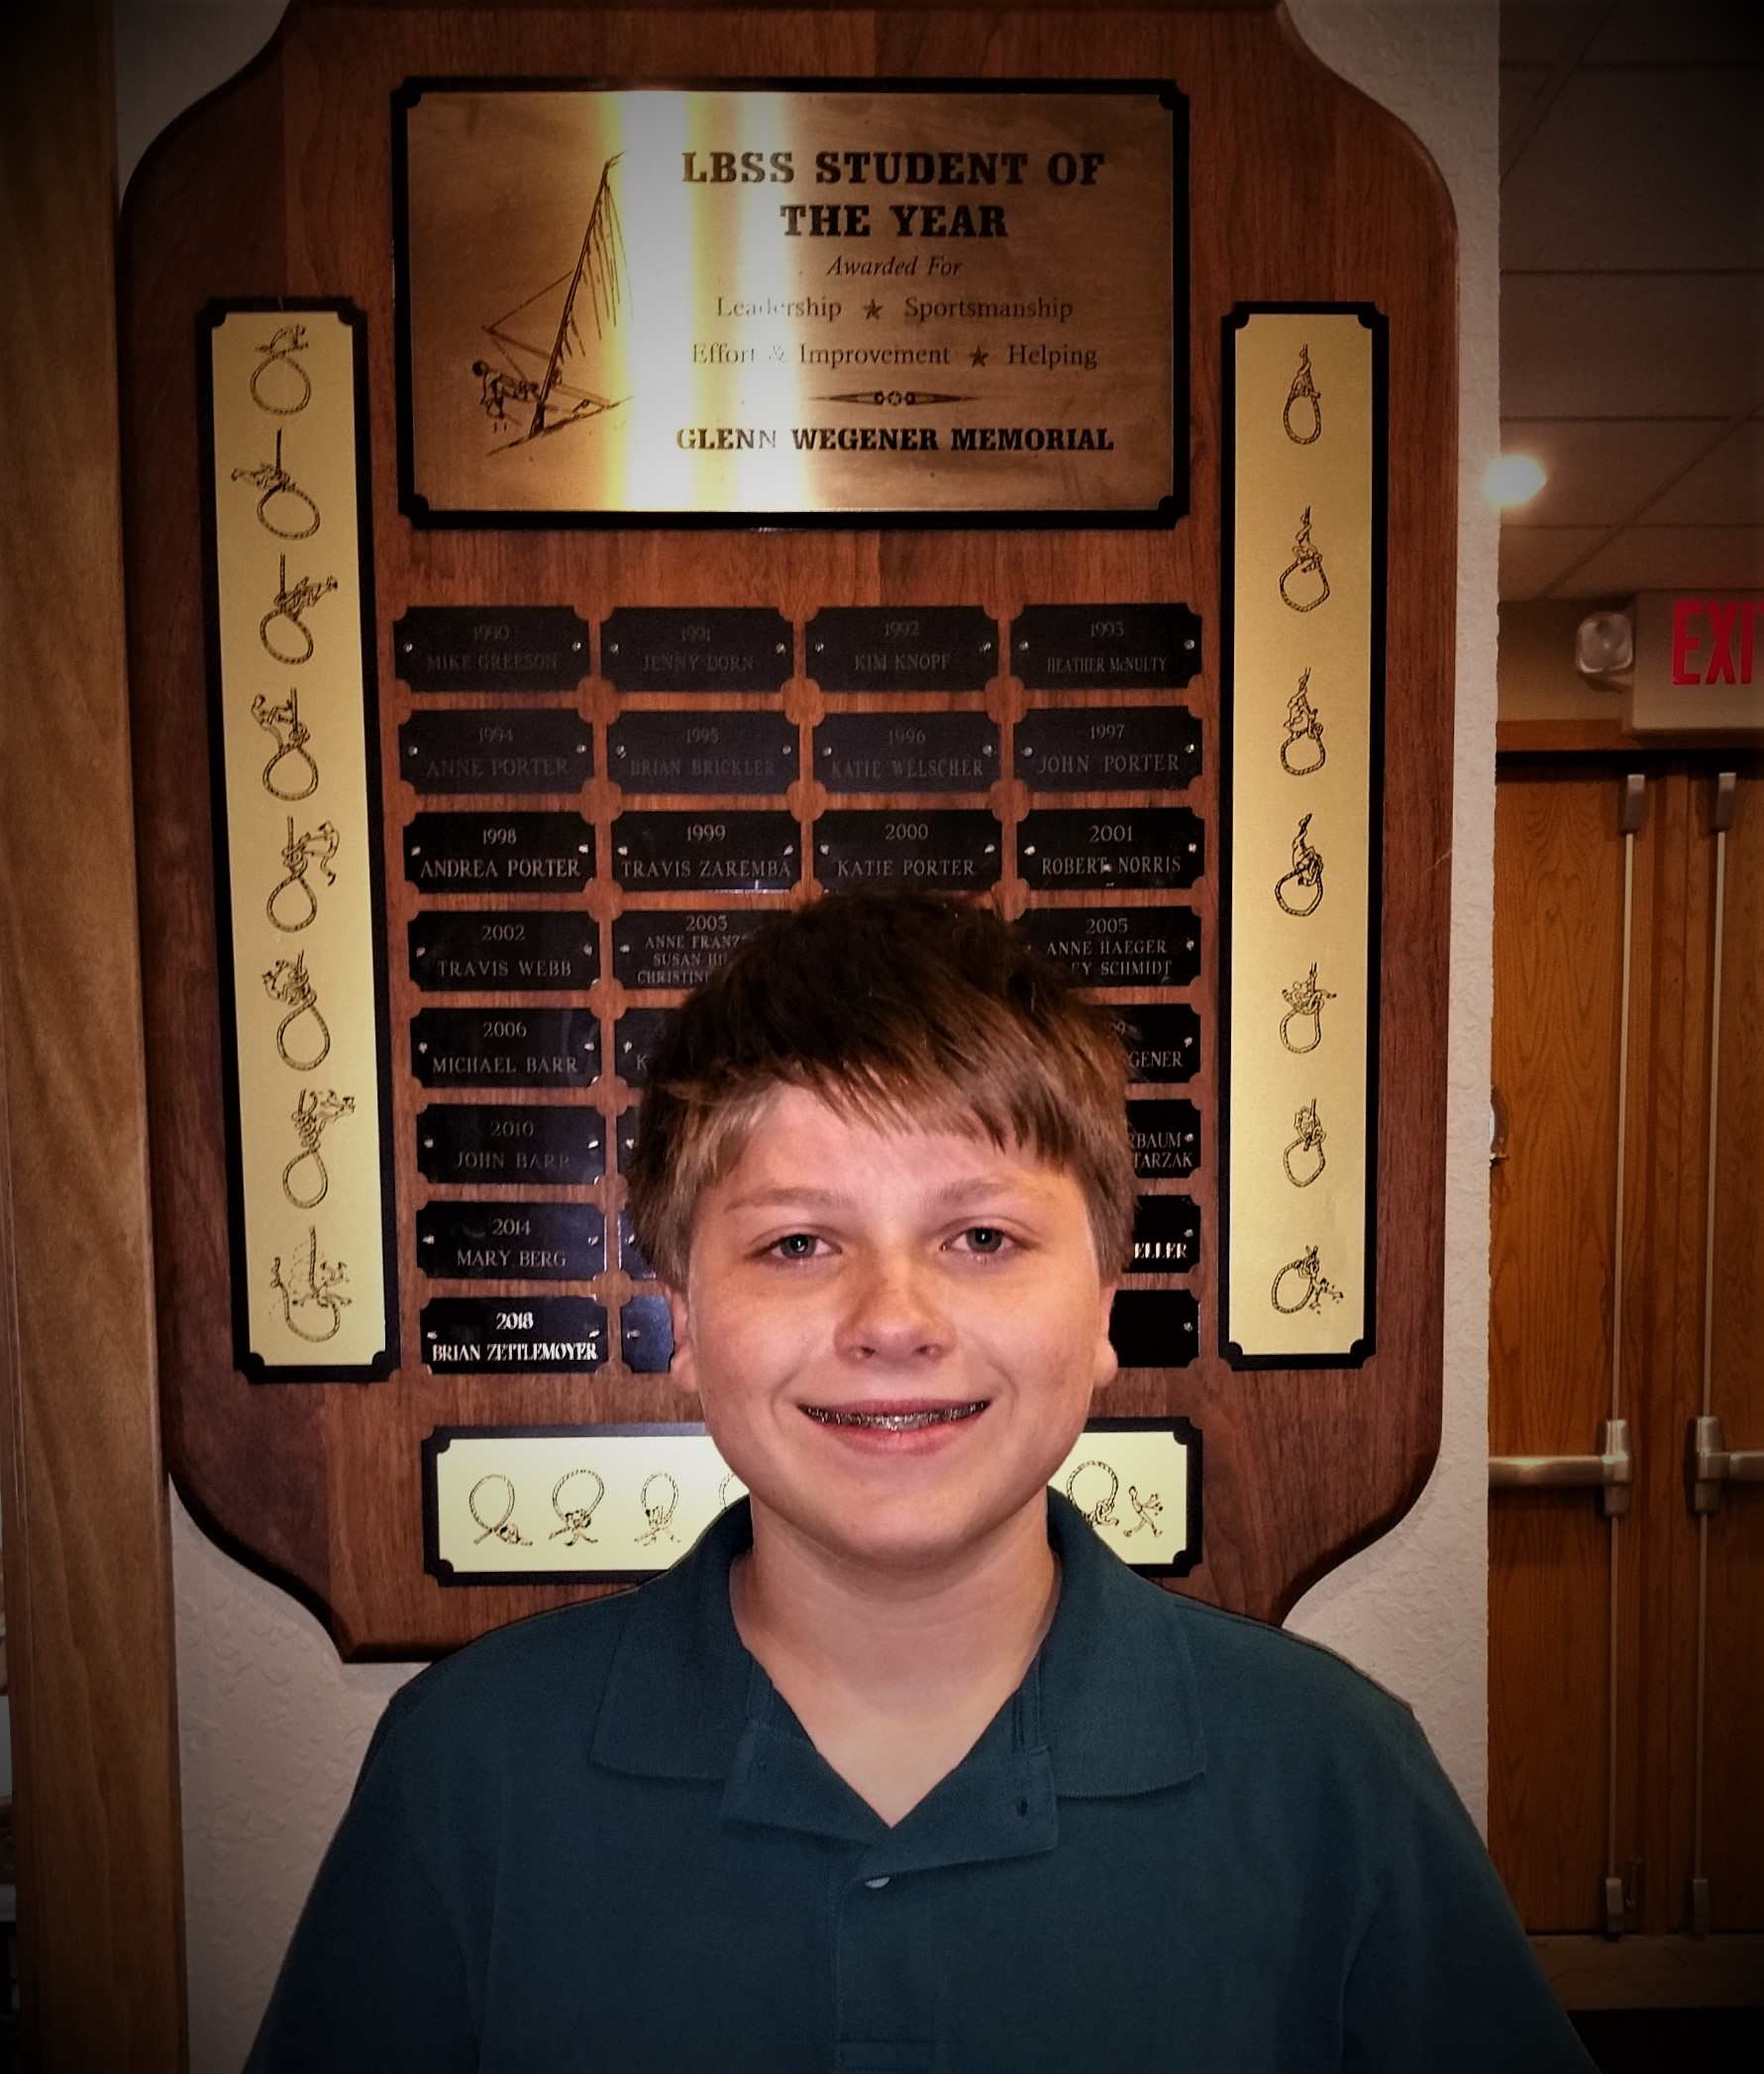 - Brian Zettlemoyer was named 2018 LBSS Student of the Year by the coaches of the Lake Beulah Sailing School. Anne Humphrey awarded Brian the Glenn Wegener Memorial Trophy in recognition of his class leadership, sportsmanship, effort, helpfulness, and improvement. Congratulations Brian!